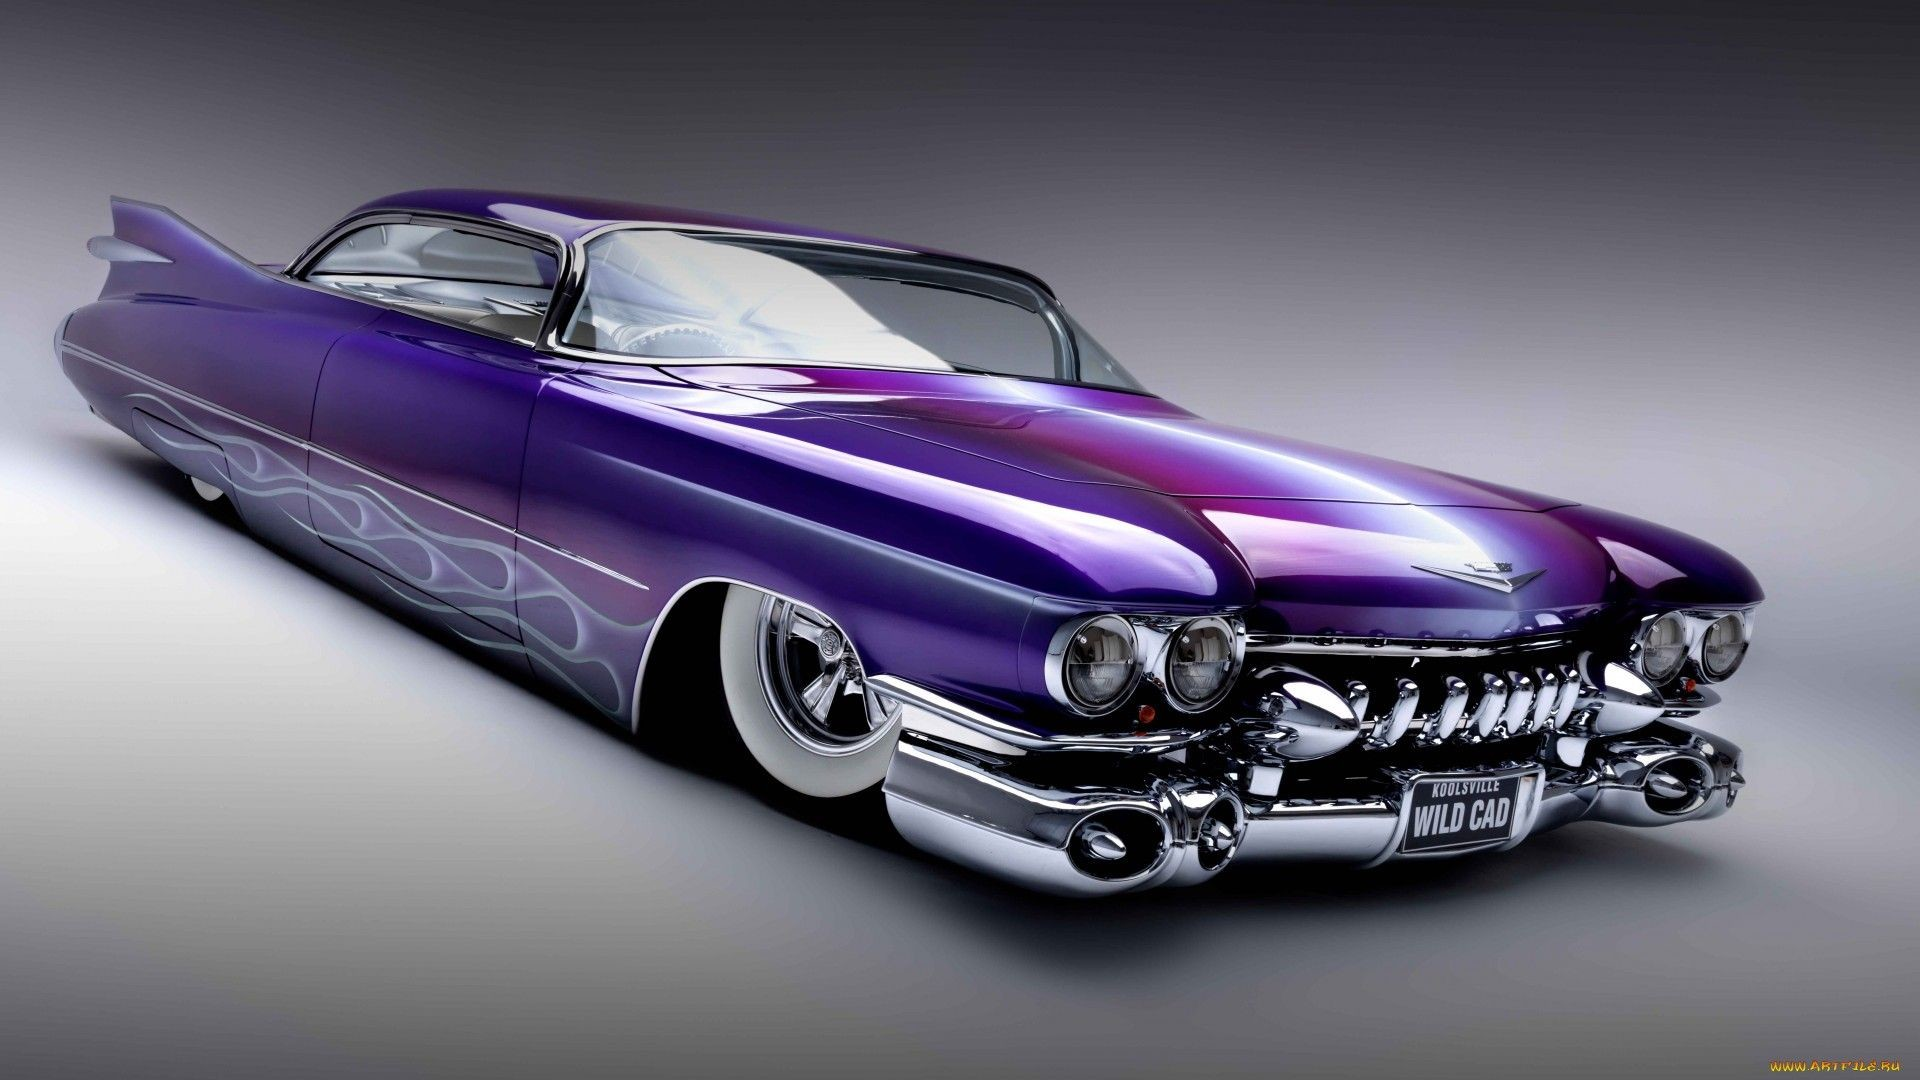 1920x1080 Best Lowrider Car Wallpapers Free High Resolution Backgrounds Of ..